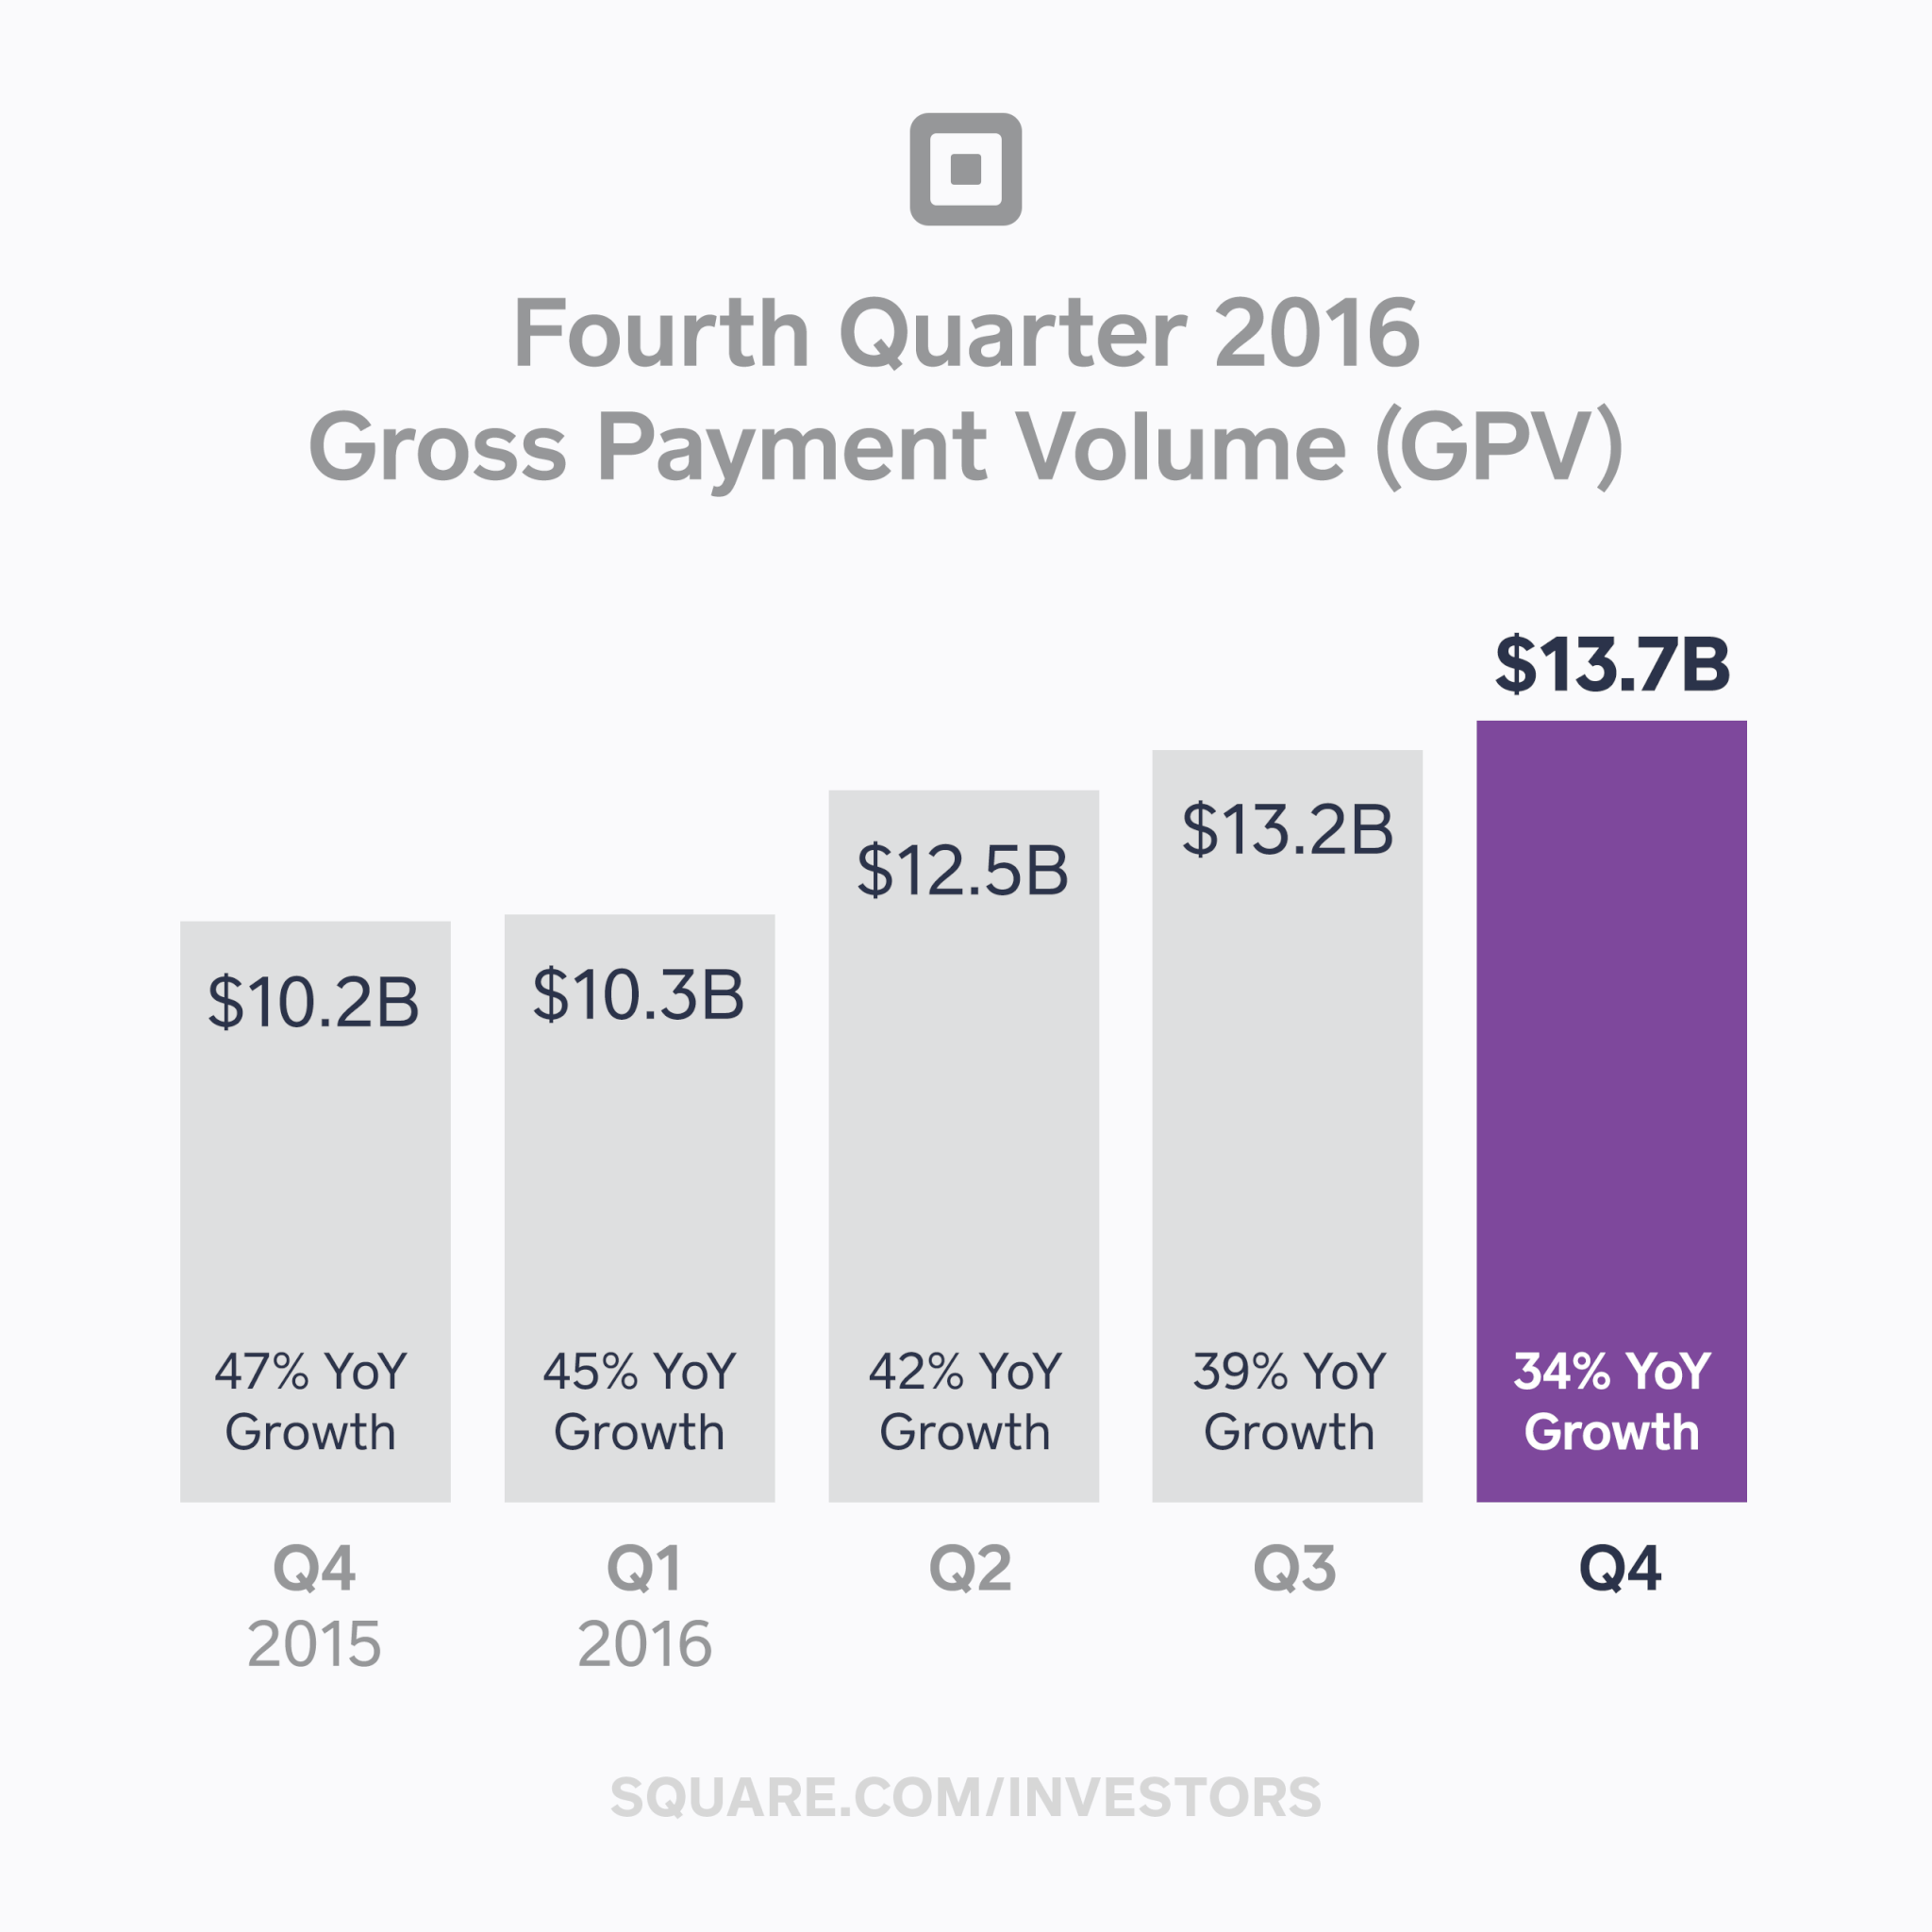 Charting Square's gross payment volume from Q4 2015 to Q4 2016.